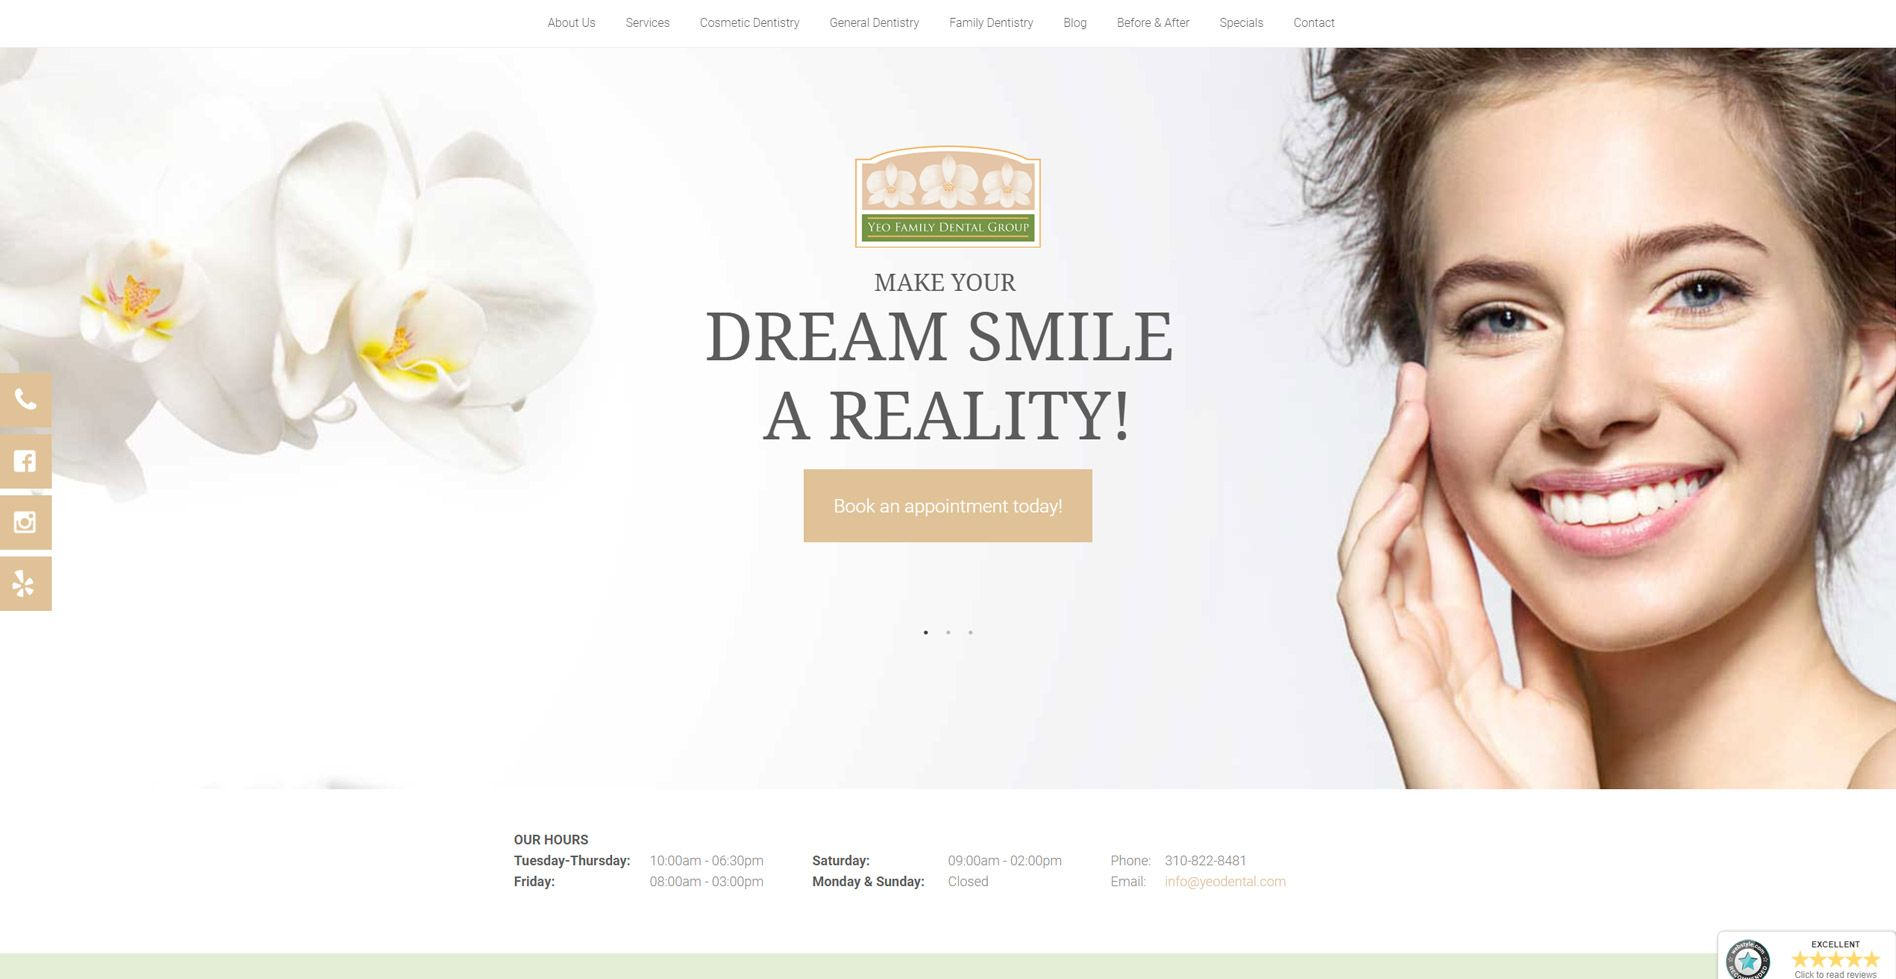 Yeo Family Dental Group Website